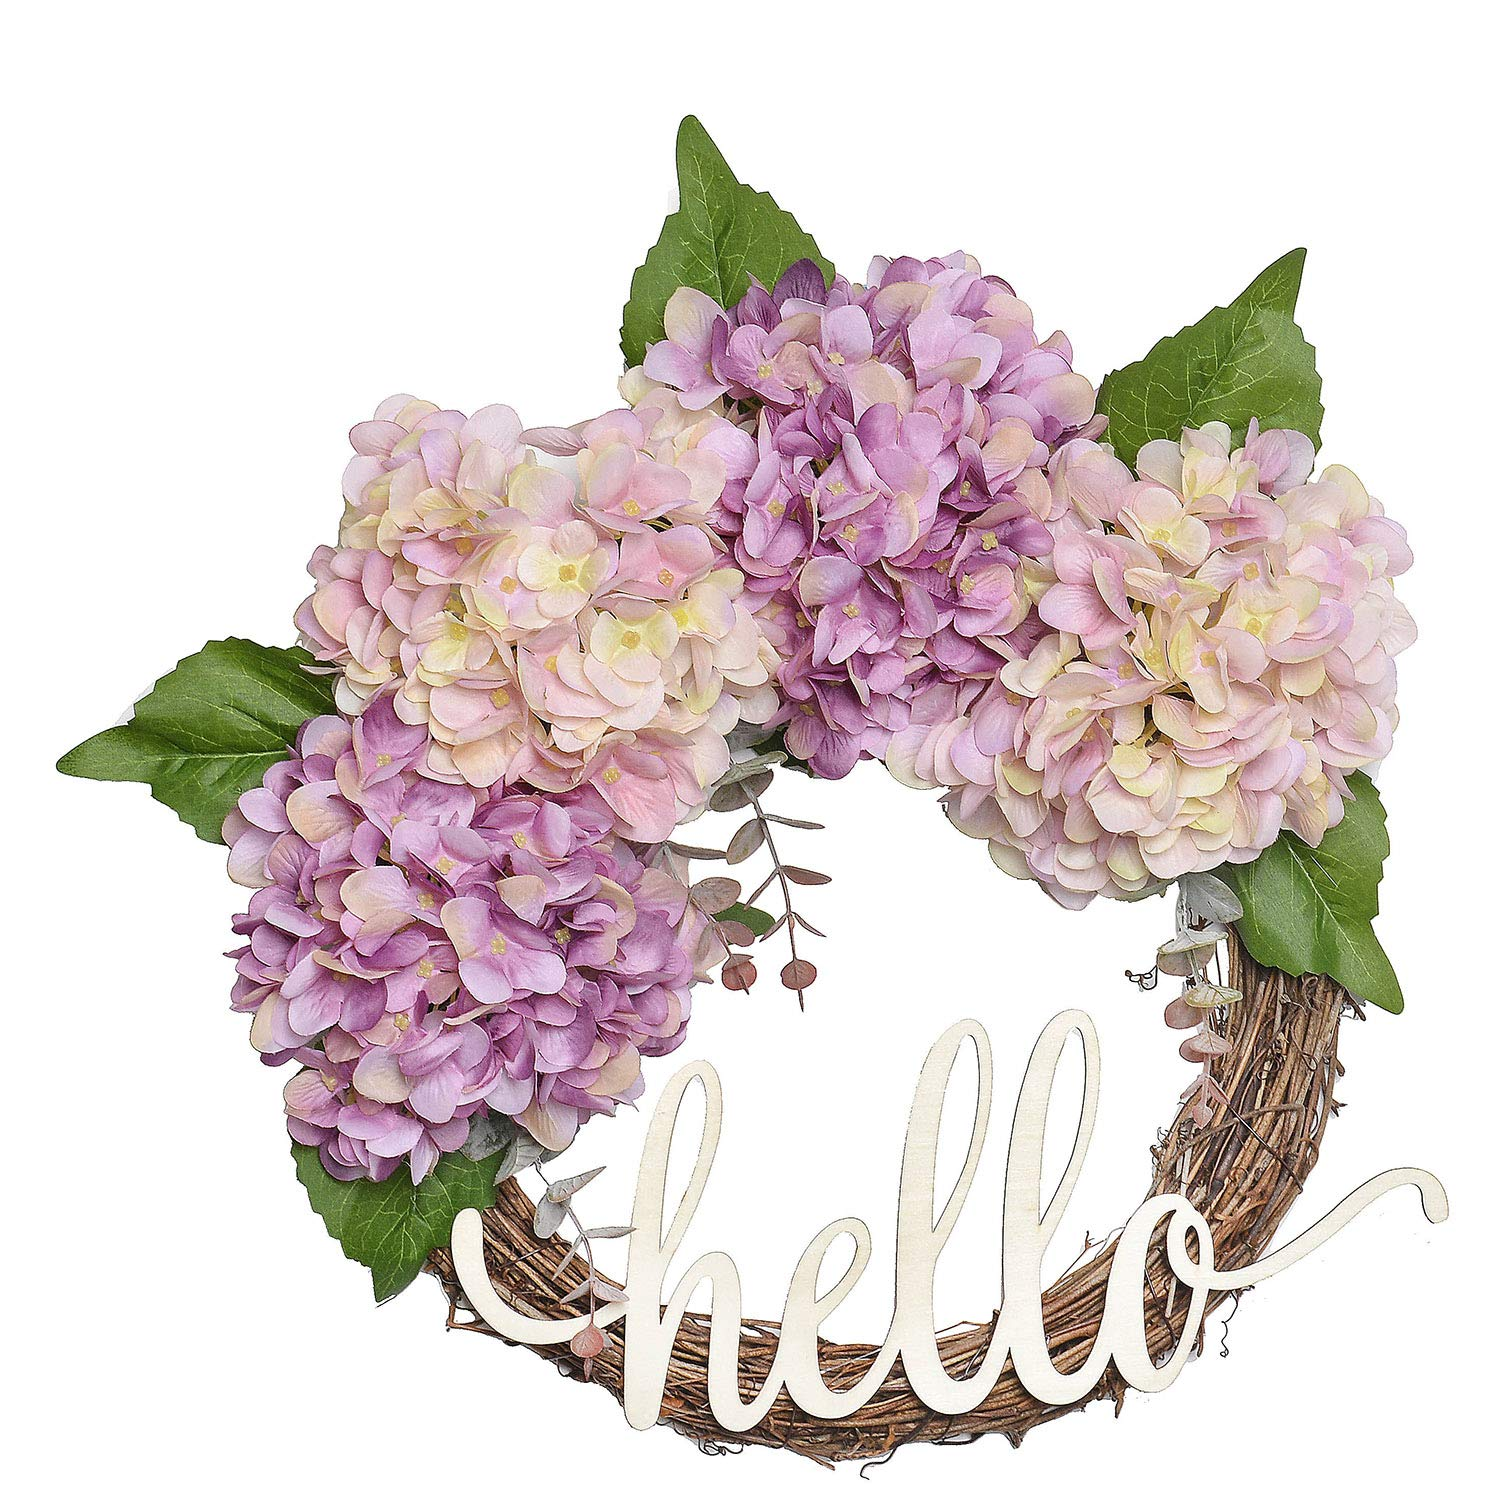 FAVOWREATH 2018 Vitality Series FAVO-W114 Handmade 14 inch Pink,Purple Hydrangea,Wild Grass,Leaf,Hello Letter Grapevine Wreath for Front Door/Wall/Fireplace Hanger Nearly Natural Everyday Home Decor